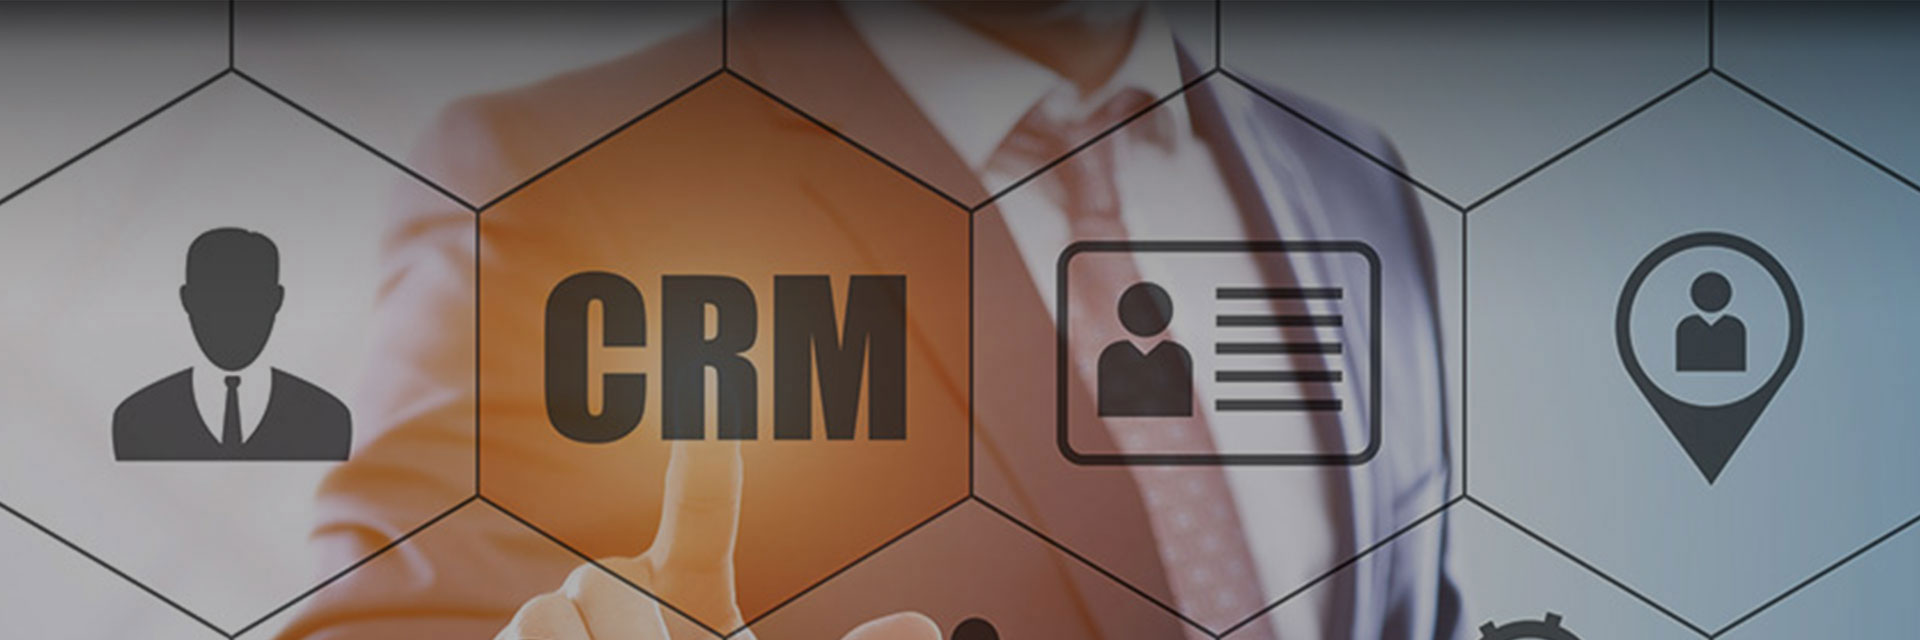 Parmis Star Customer Relation Management (CRM) ERP Software